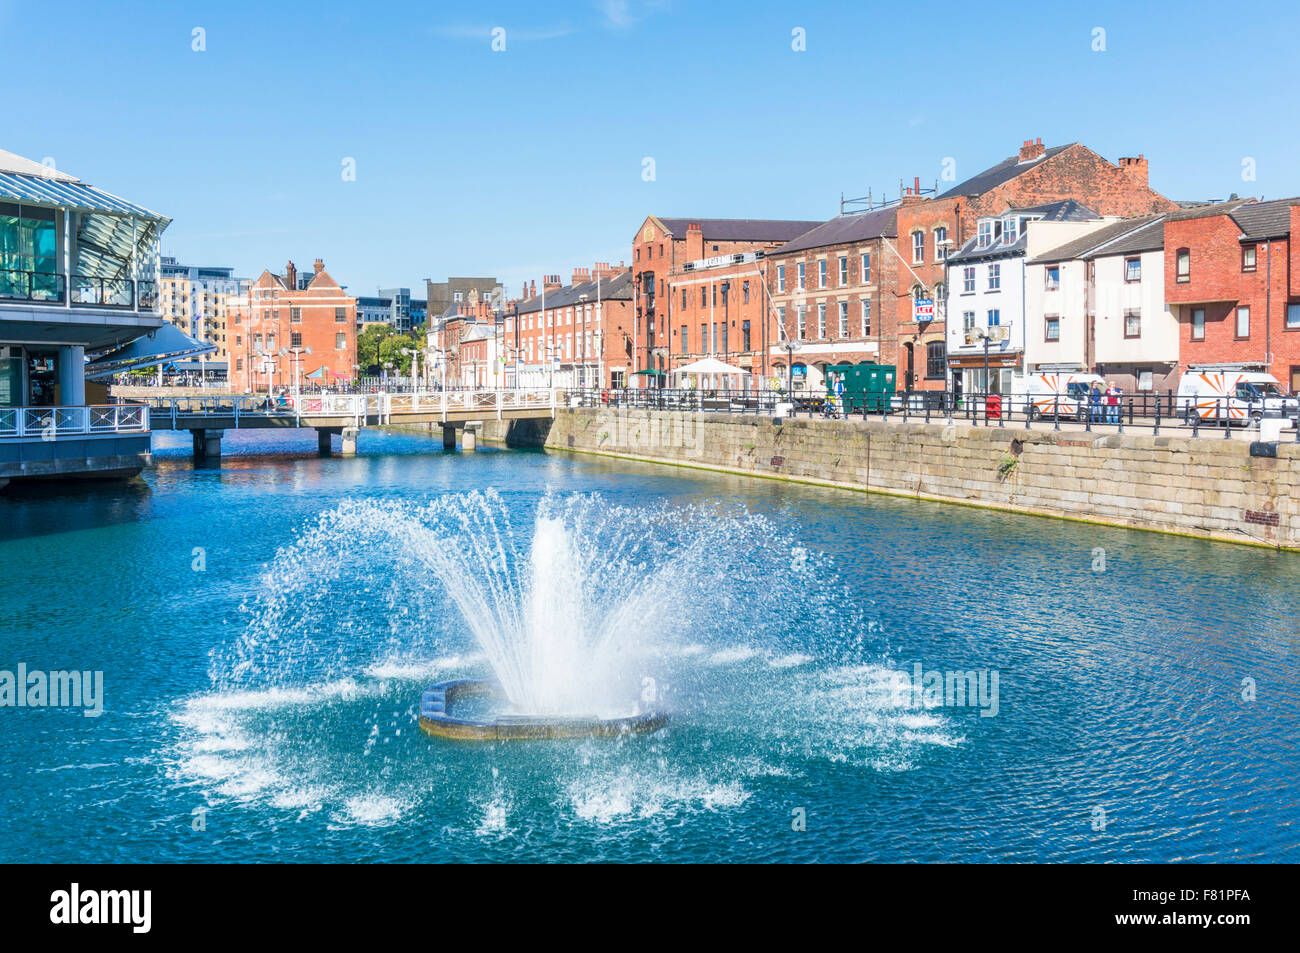 Exterior of Prince's Quay shopping centre built over Prince's dock Kingston upon Hull Yorkshire England - Stock Image